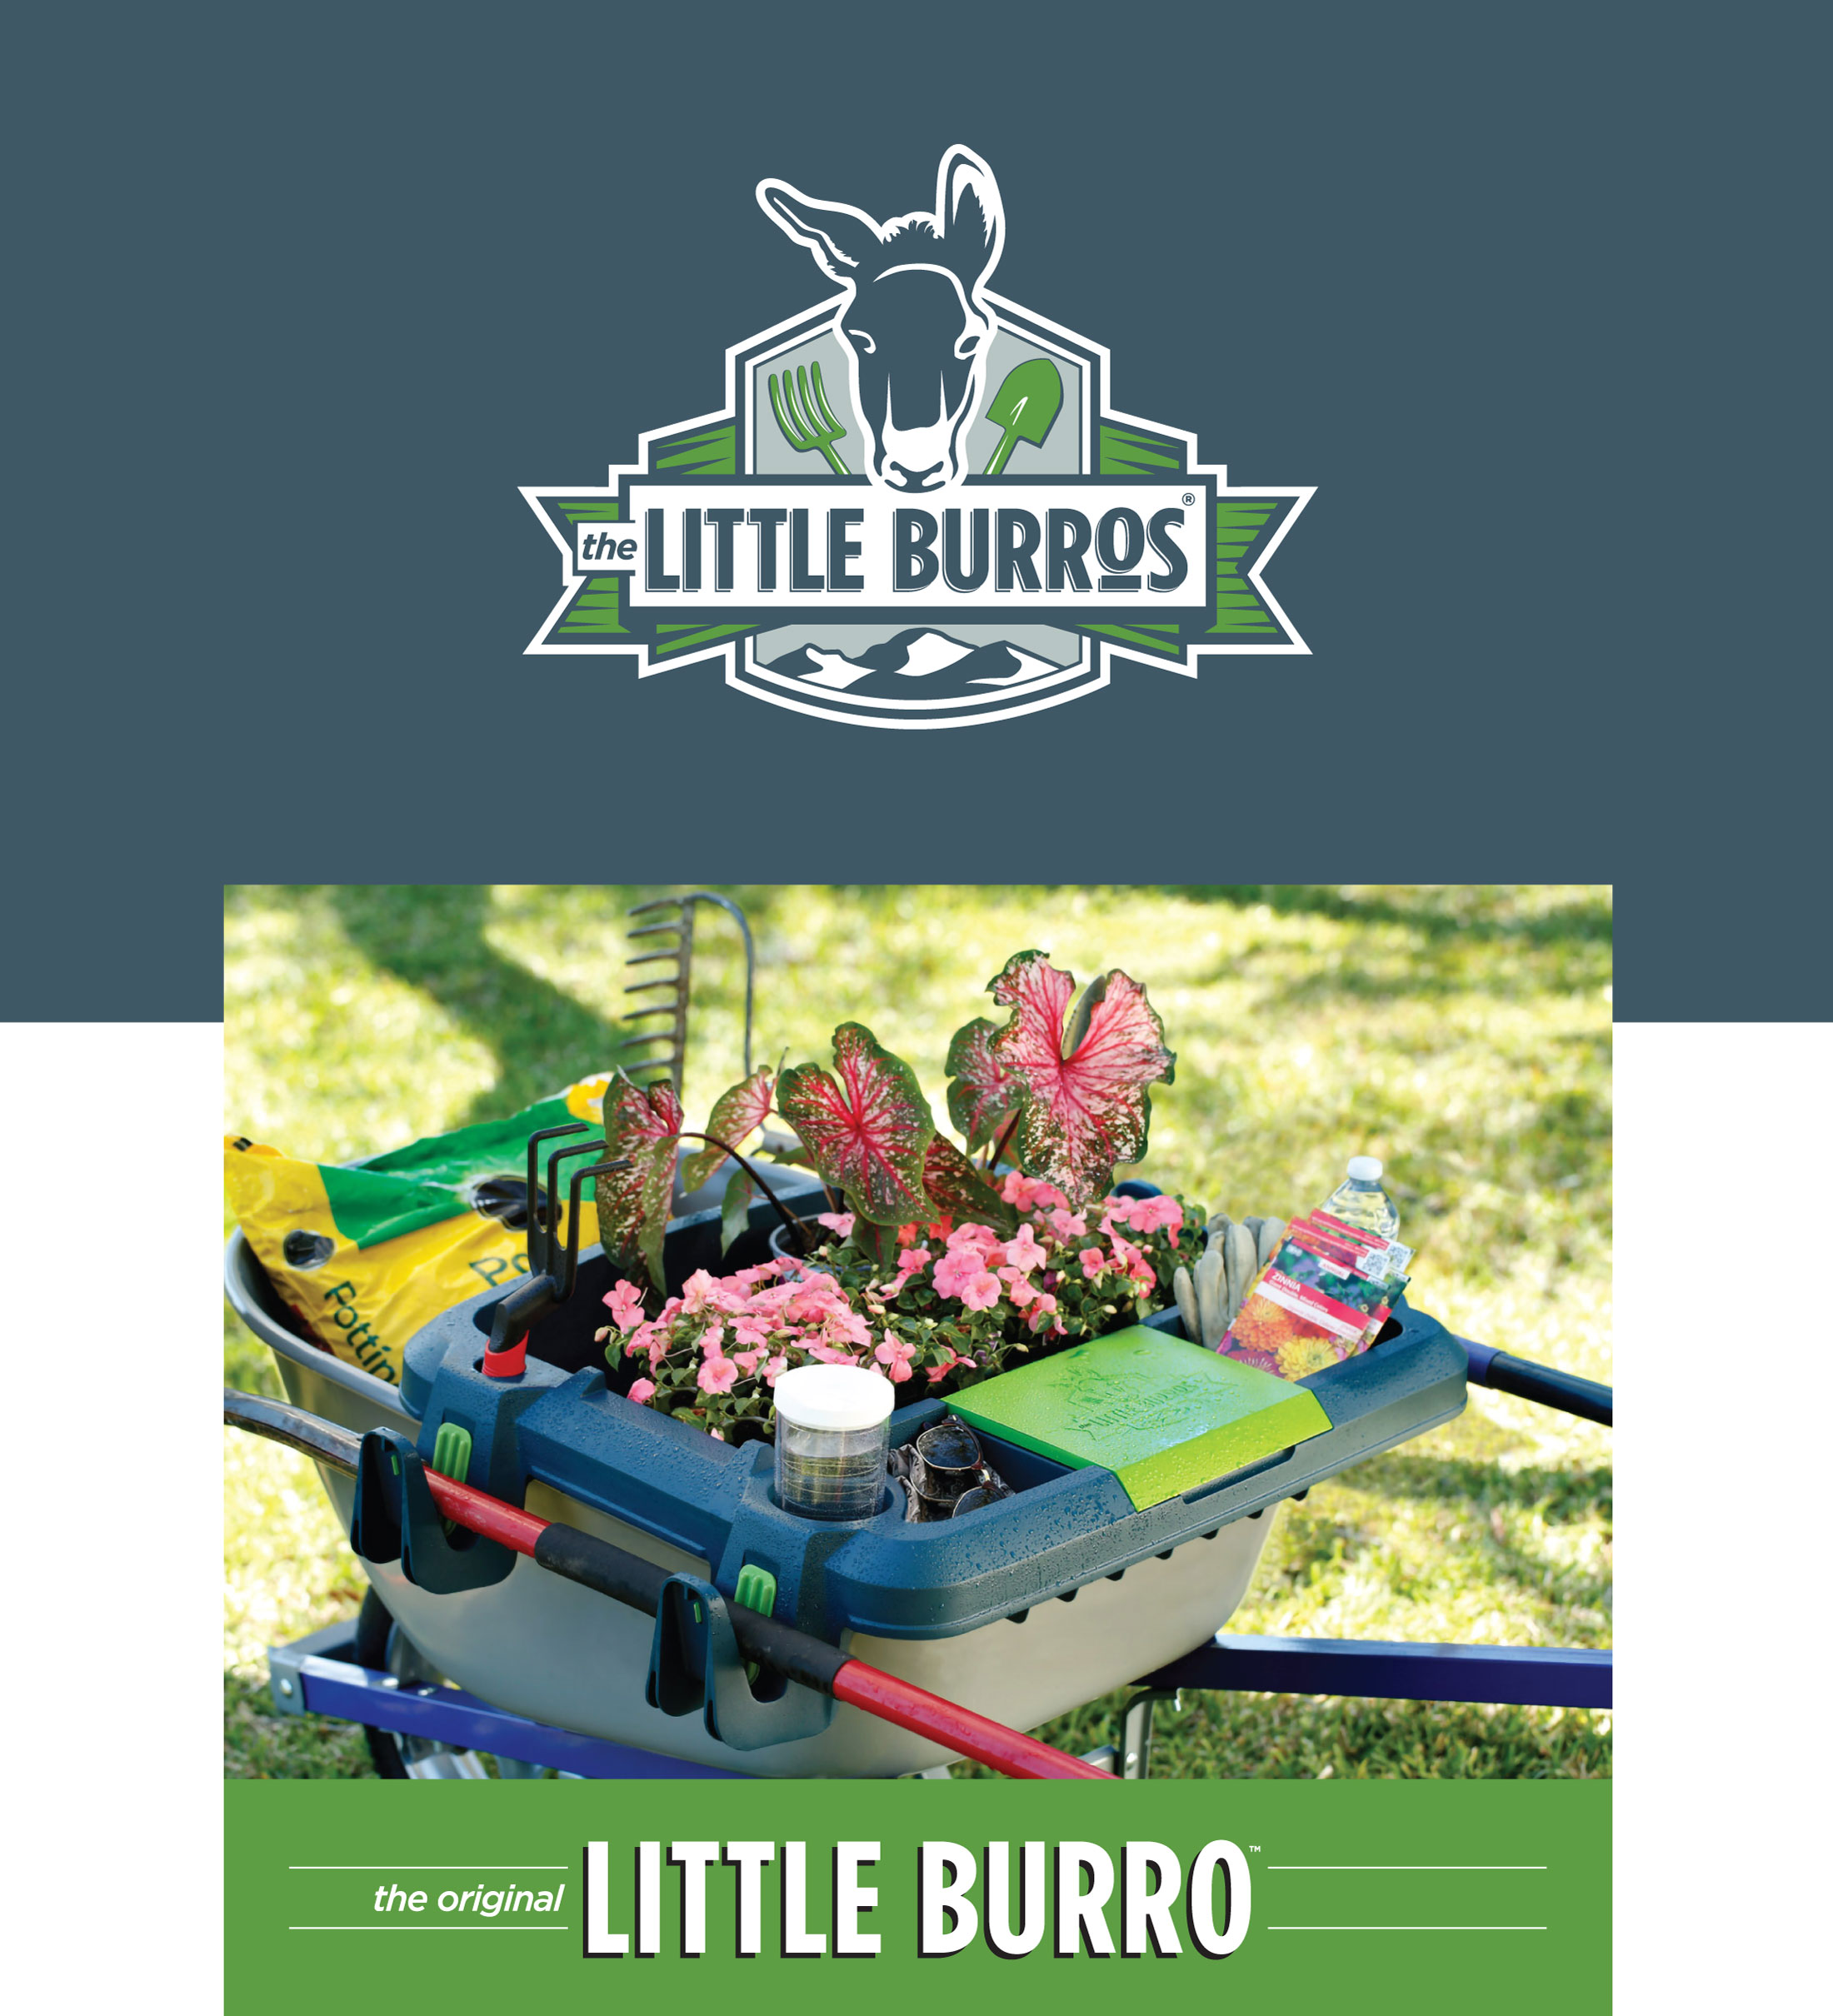 Little Burros logos and photography art direction